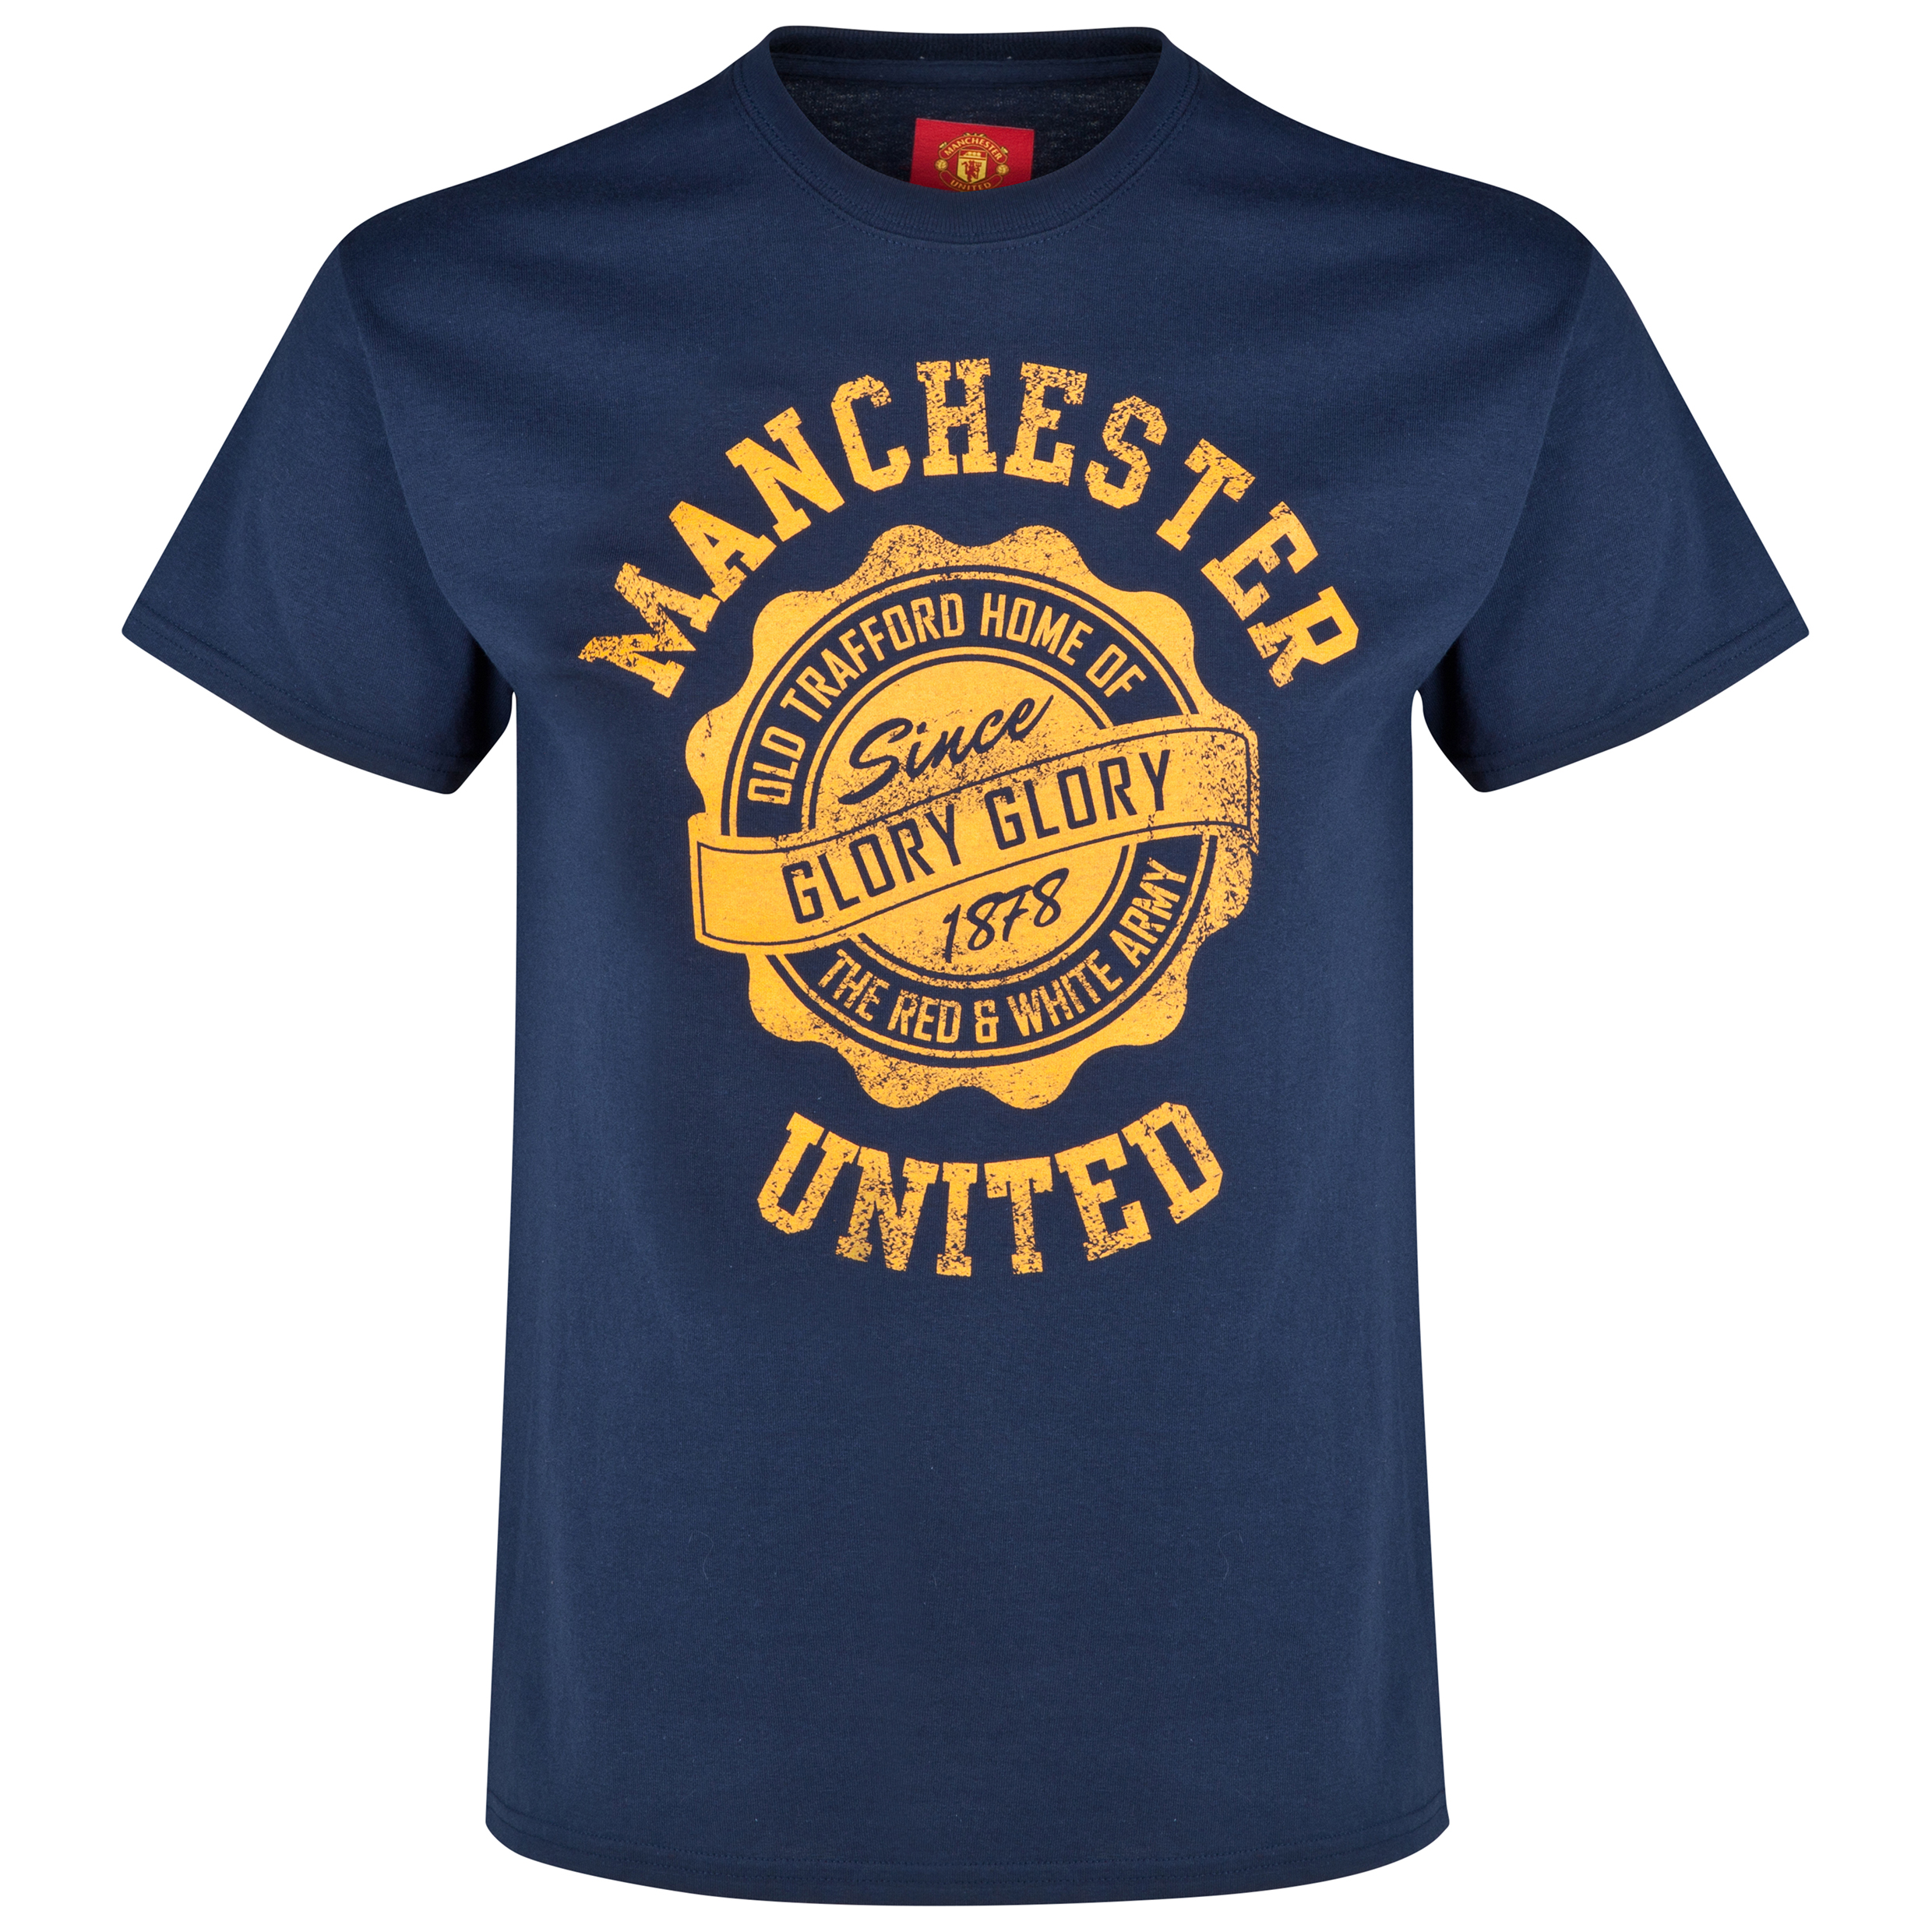 Manchester United Distressed T-Shirt Navy - Mens